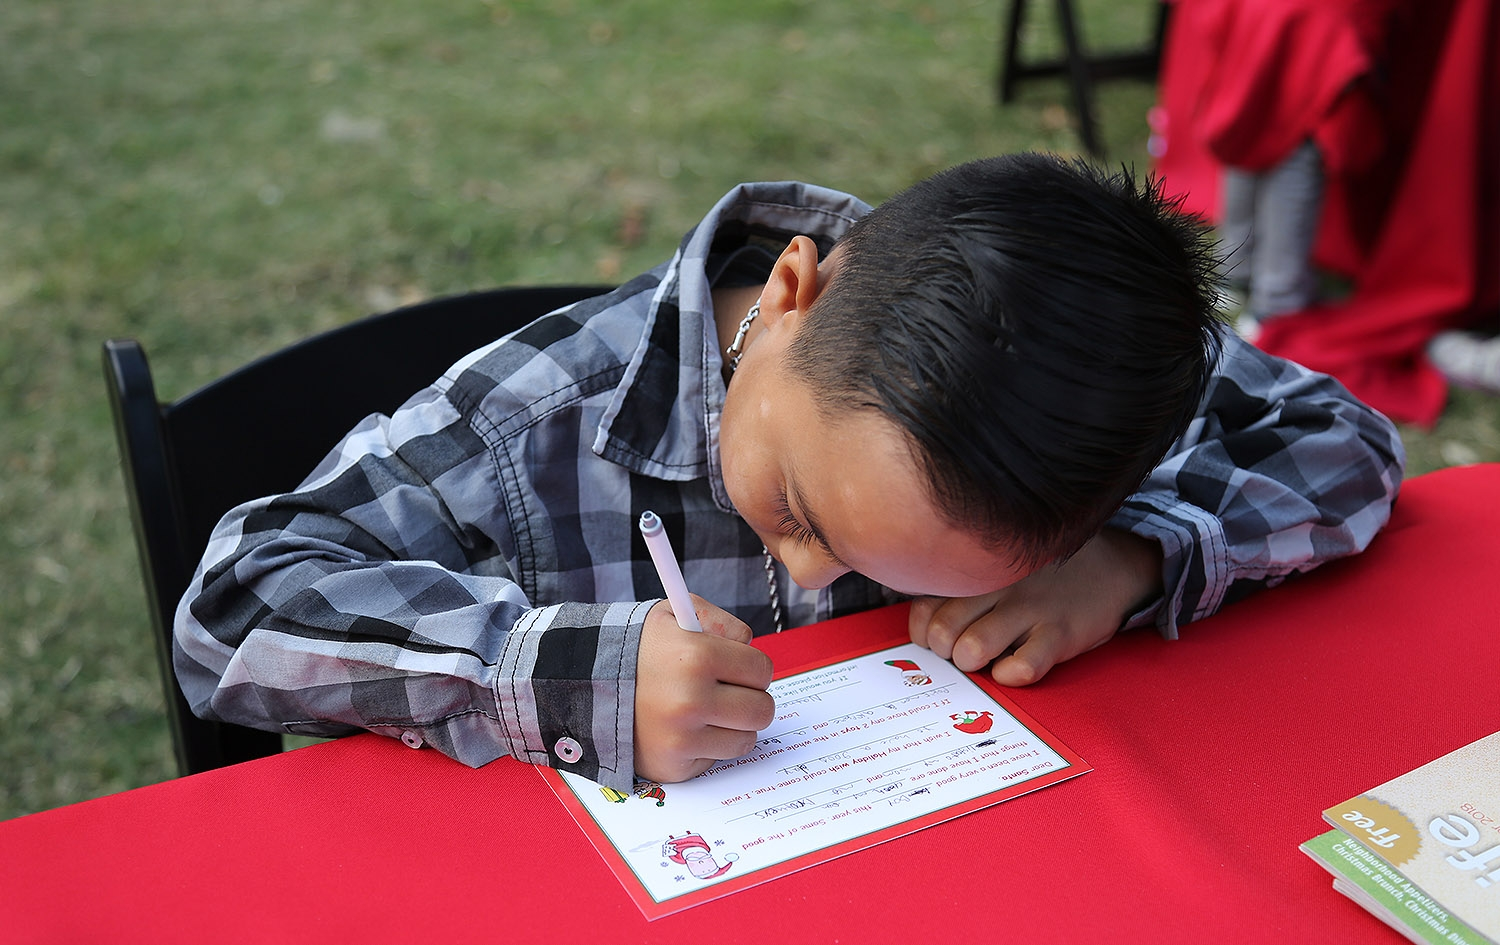 Nathen Escobedo, 8, writes a letter to Santa during the H-E-B Christmas Tree Lighting Celebration Friday at Travis Park. <em><b>Photo by Ben Olivo | Heron</b></em>